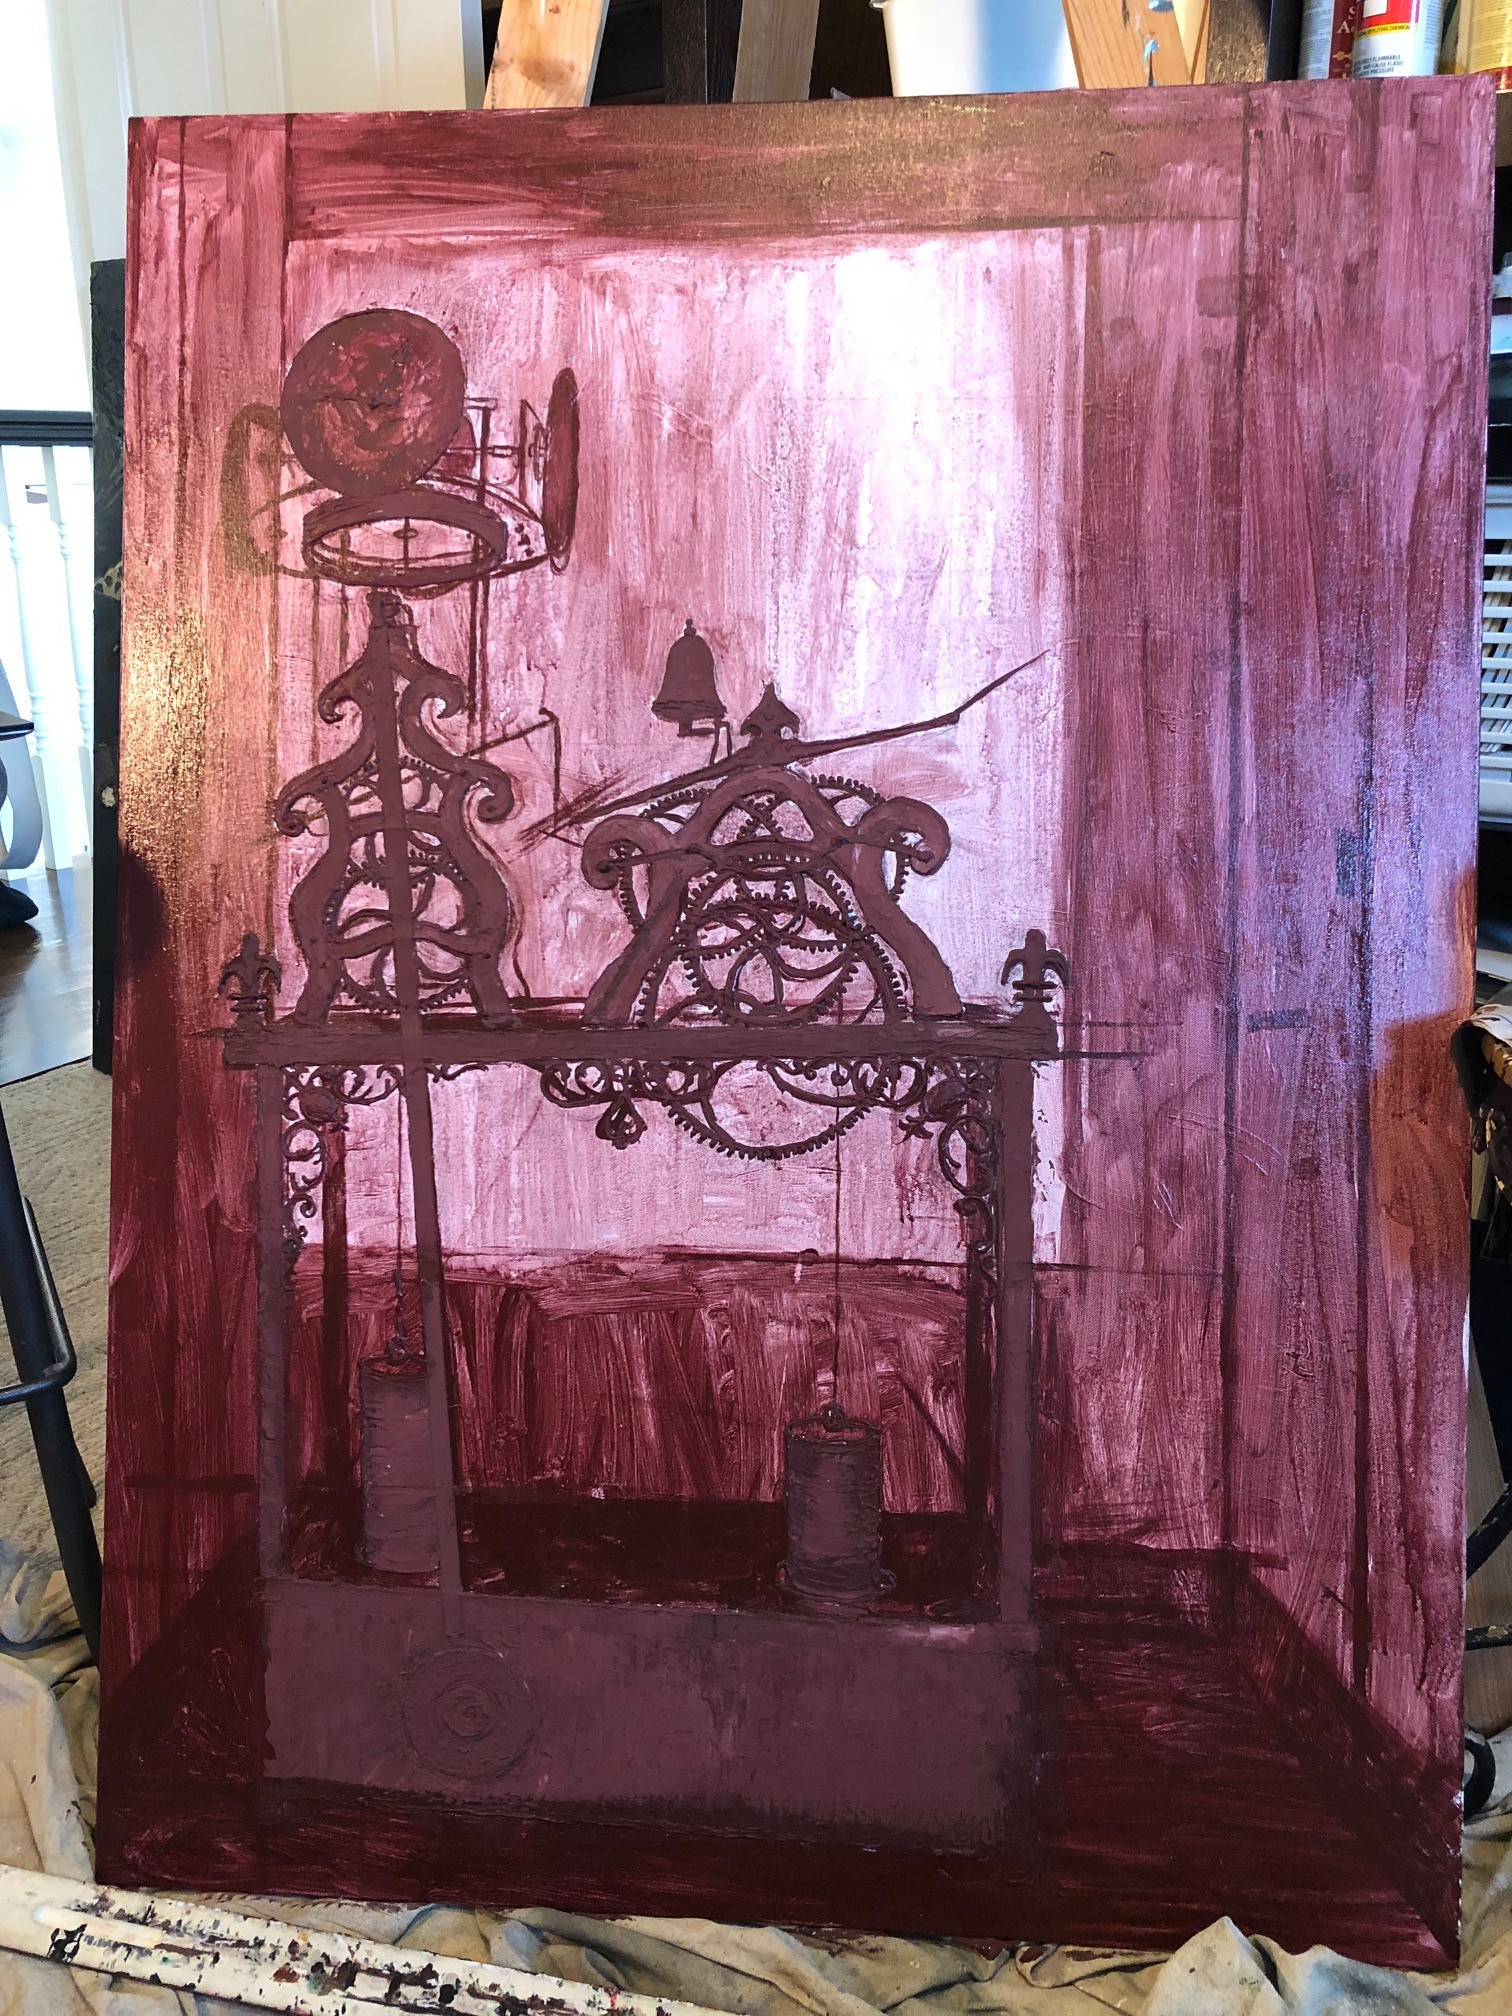 Finished layering modeling paste and completed underpainting